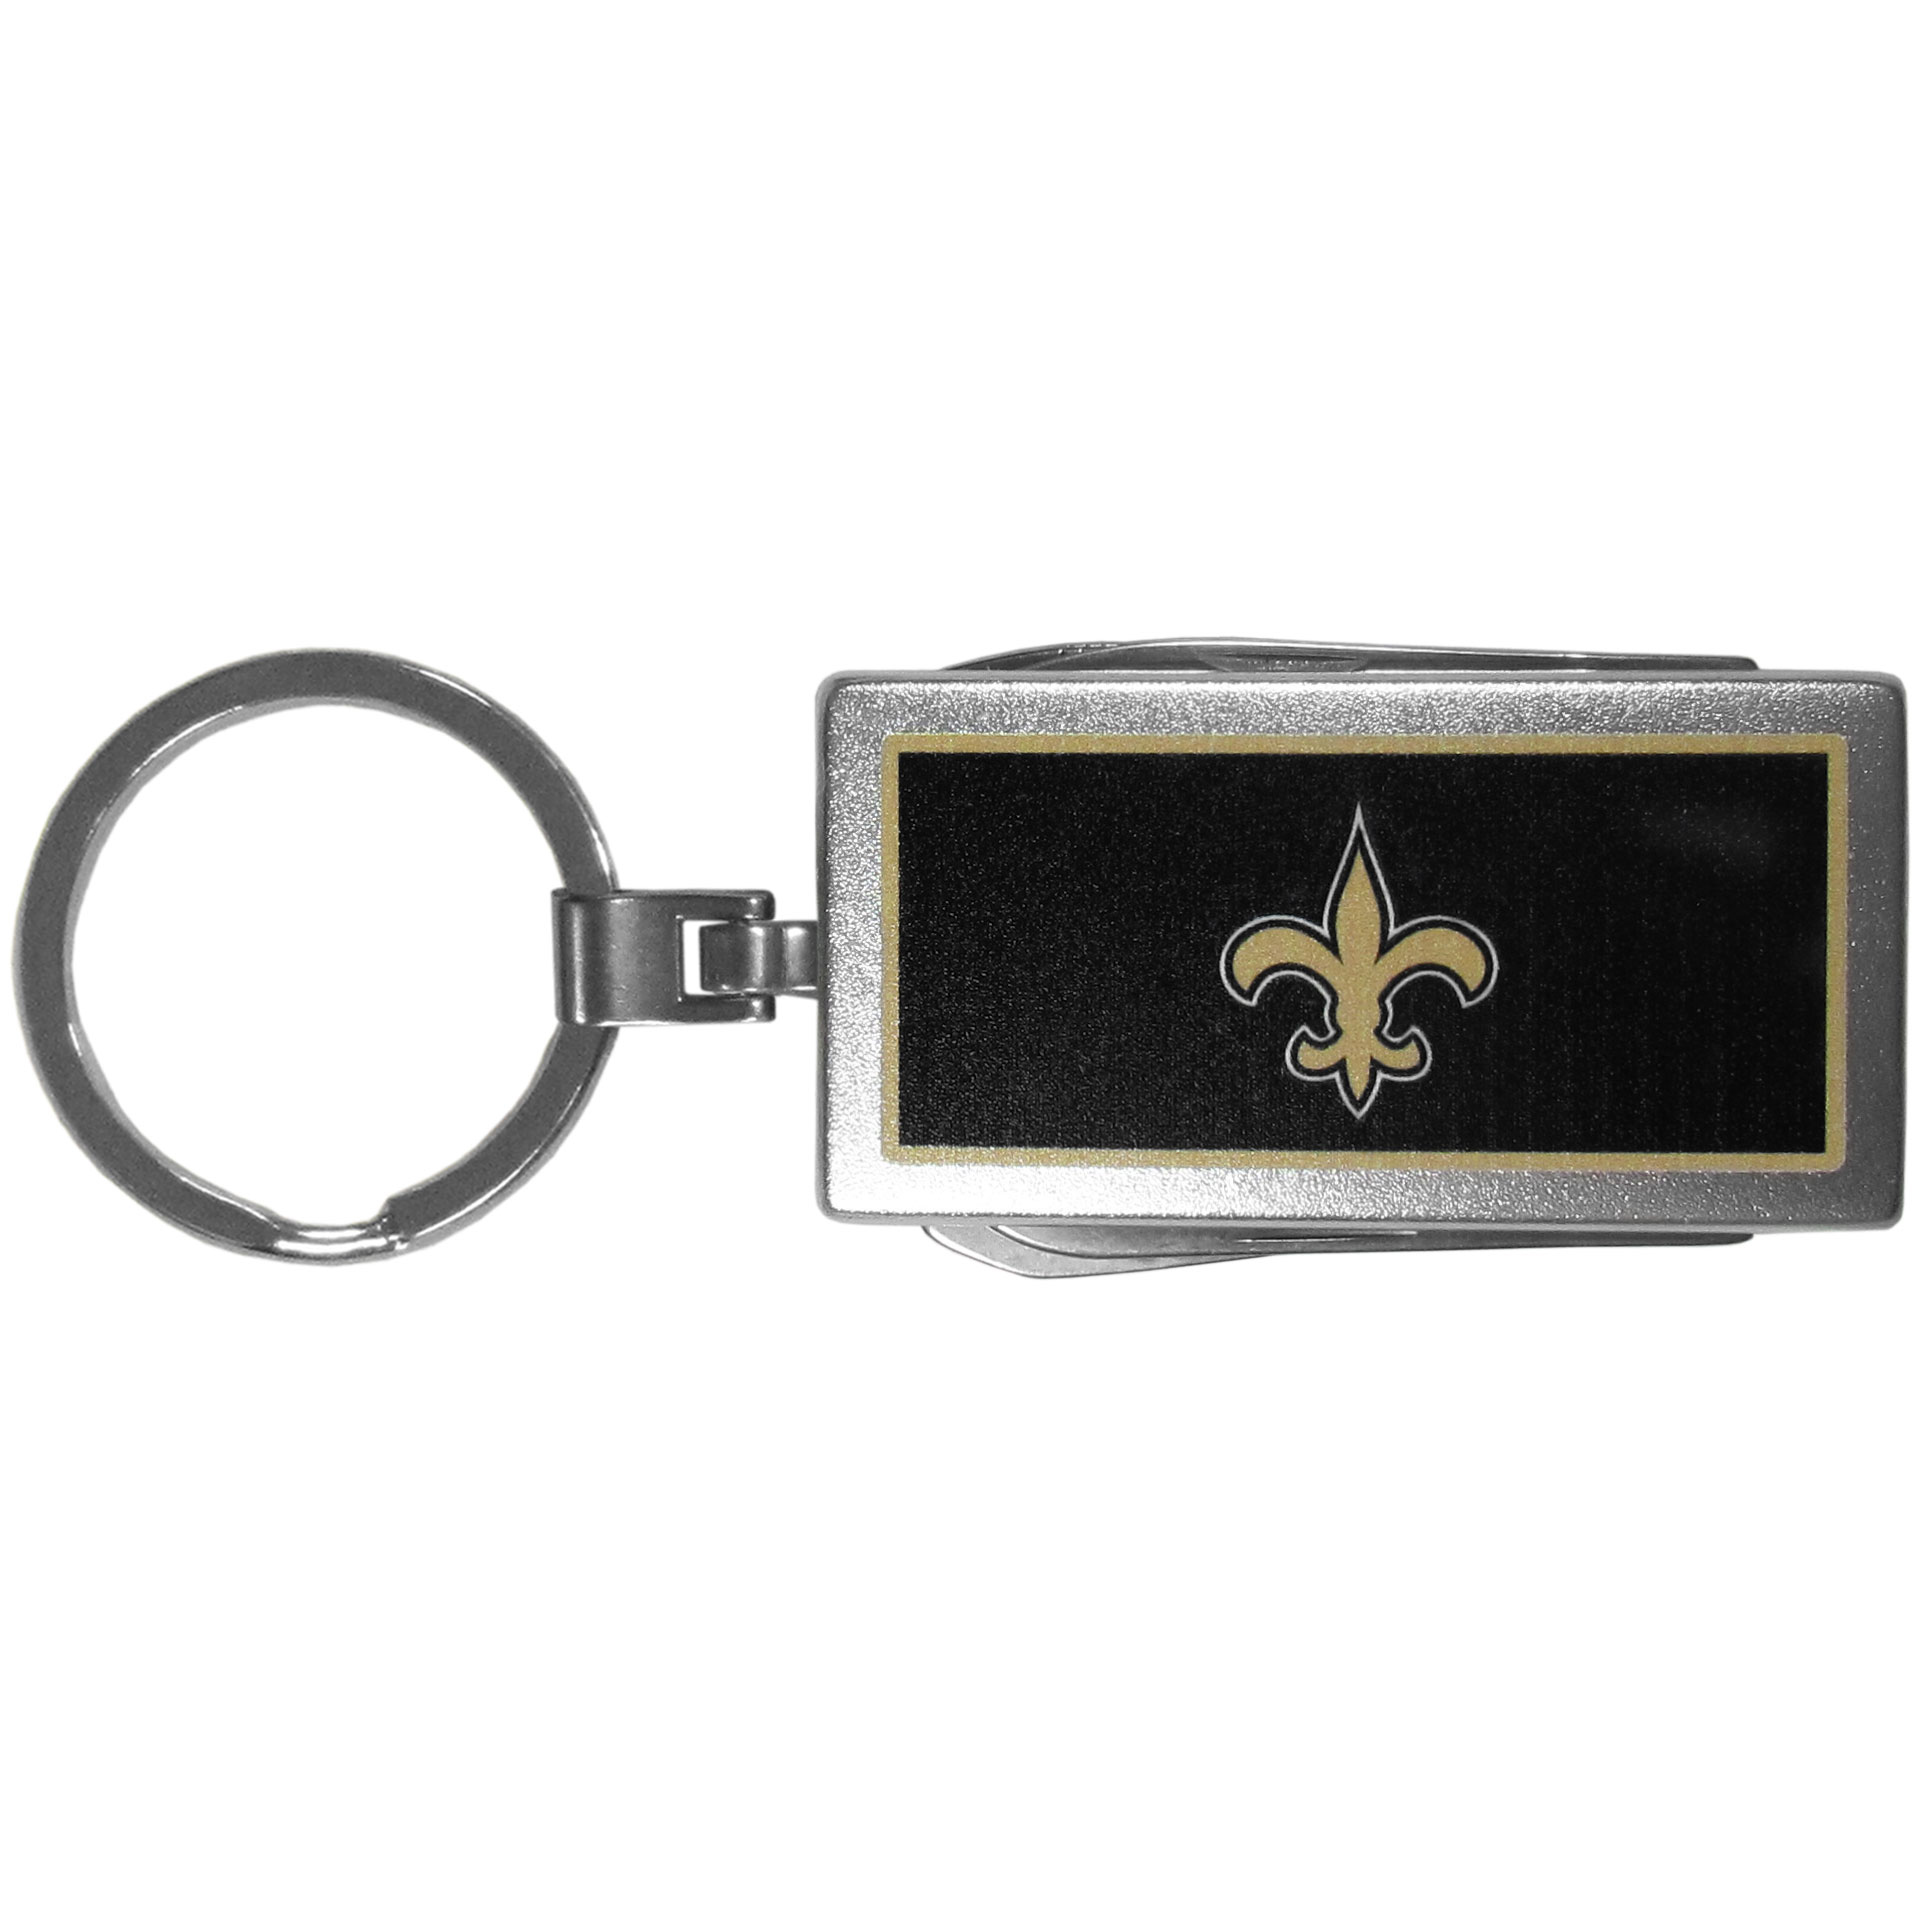 New Orleans Saints Multi-tool Key Chain, Logo - Be the hero at the tailgate, camping, or on a Friday night with your New Orleans Saints Multi-Tool Keychain which comes complete with bottle opener, scissors, knife, nail file and screw driver. Be it opening a package or a beverage Siskiyou's Multi-Tool Keychain goes wherever your keys do. The keychain hangs at 4 inches long when closed.